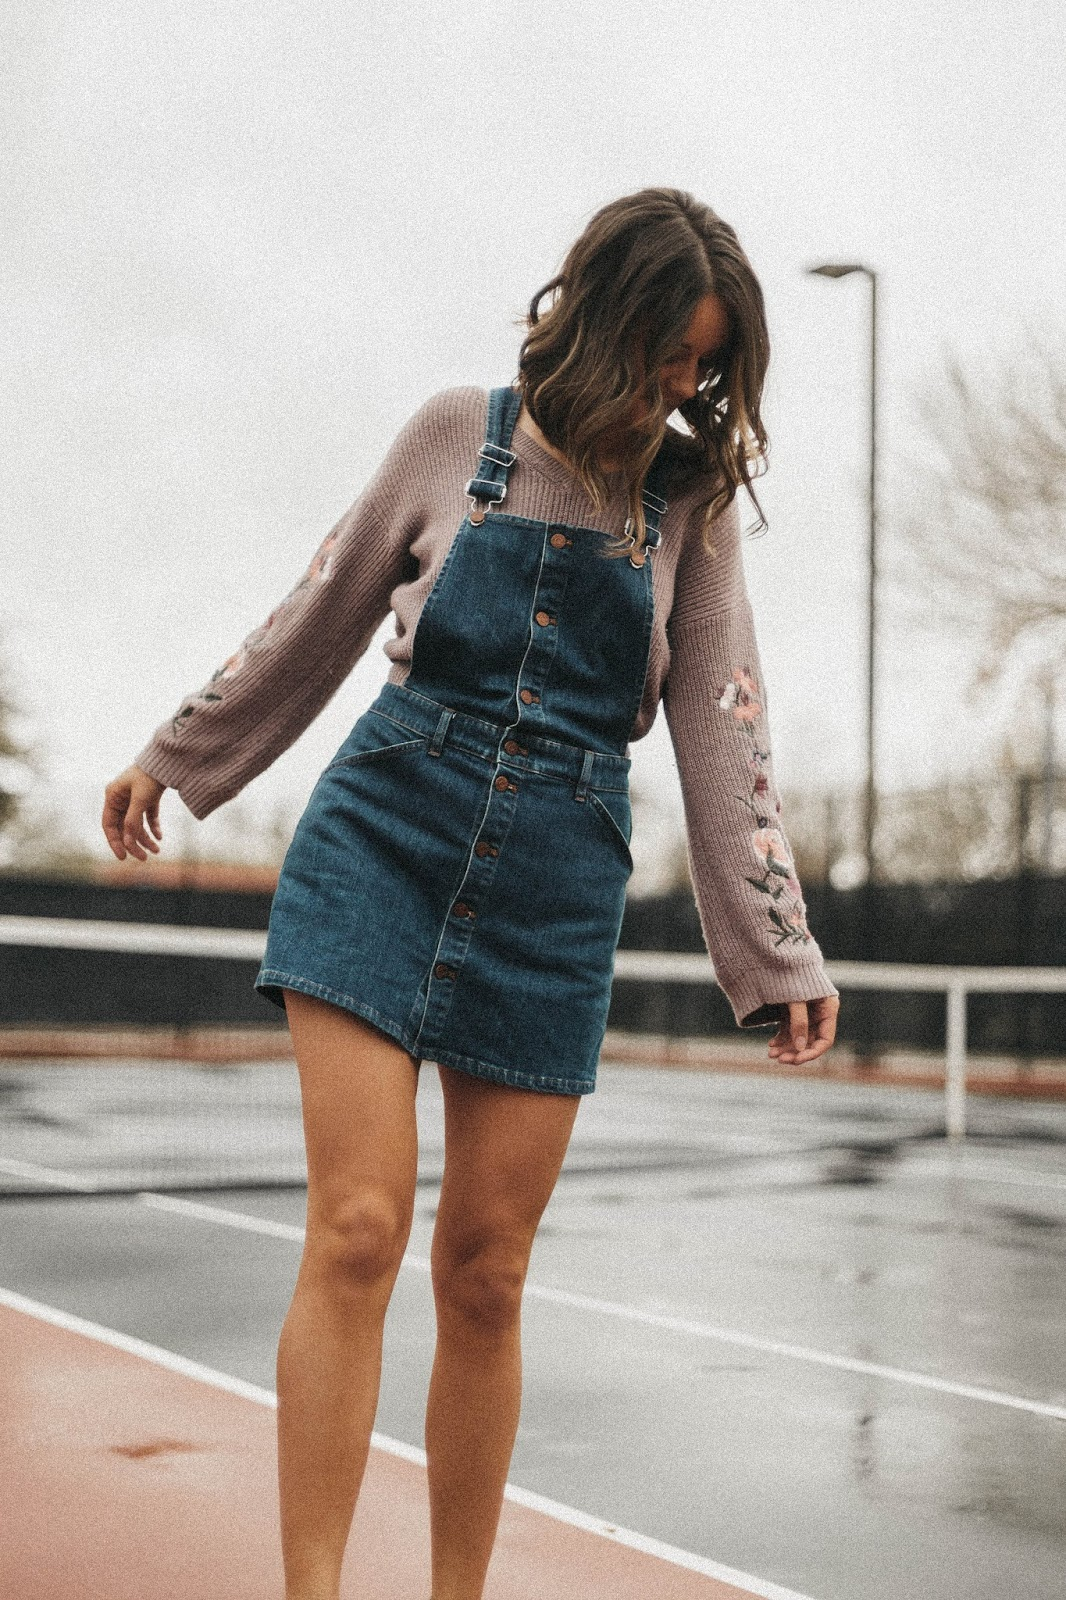 A Shoppers List of Denim Skirt Buying Questions